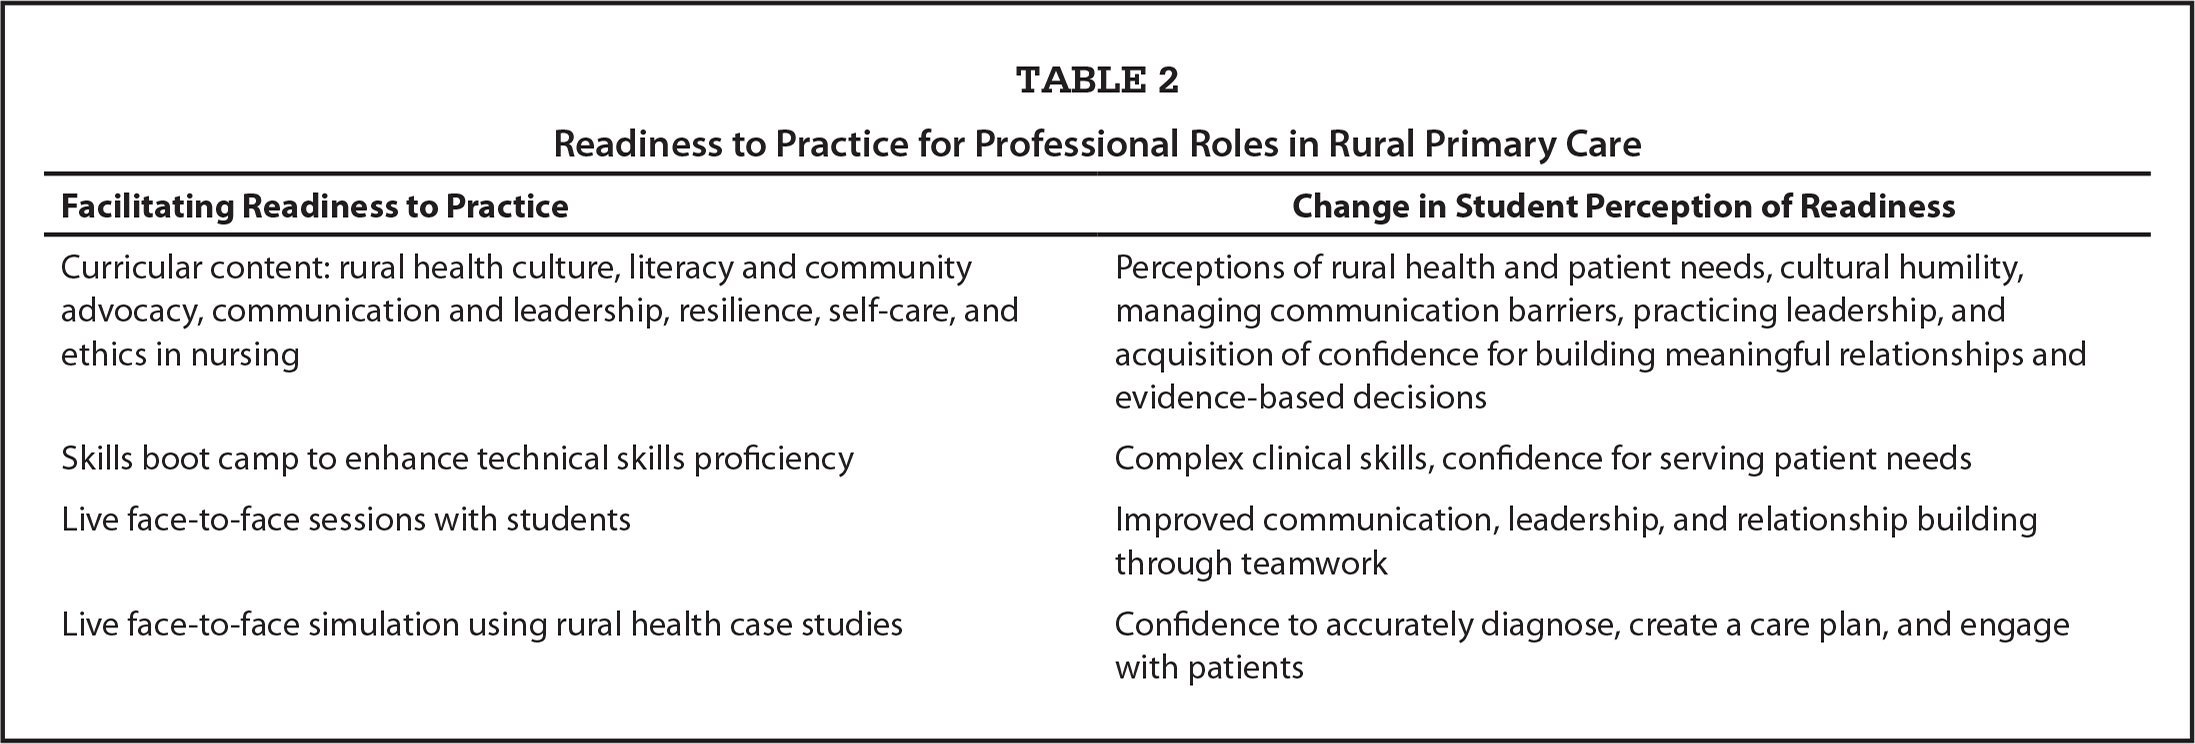 Readiness to Practice for Professional Roles in Rural Primary Care